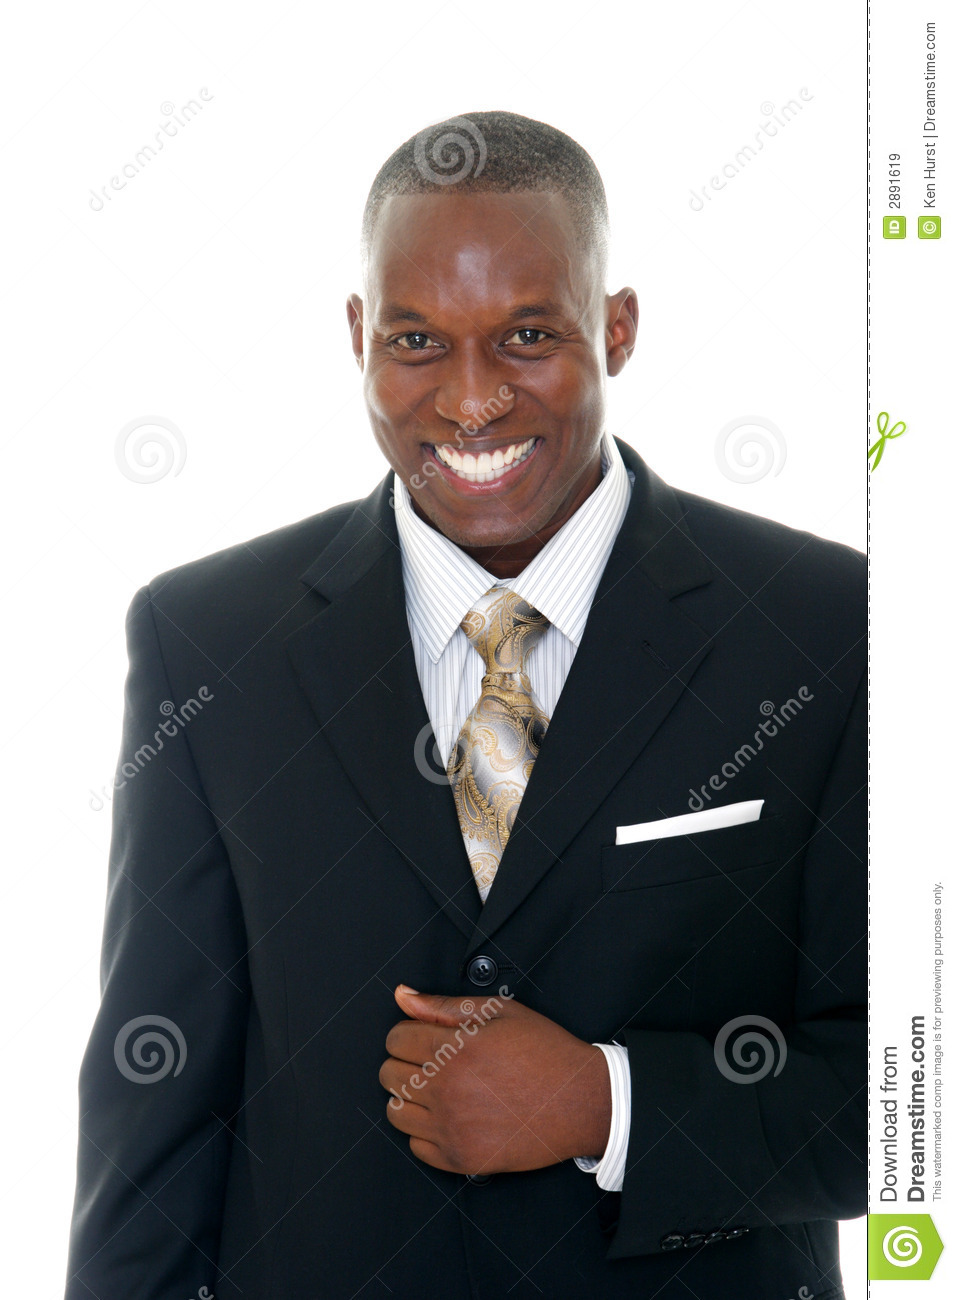 Business Man In Black Suit 1 Stock Image - Image: 2891619 Young Businessman Fashion